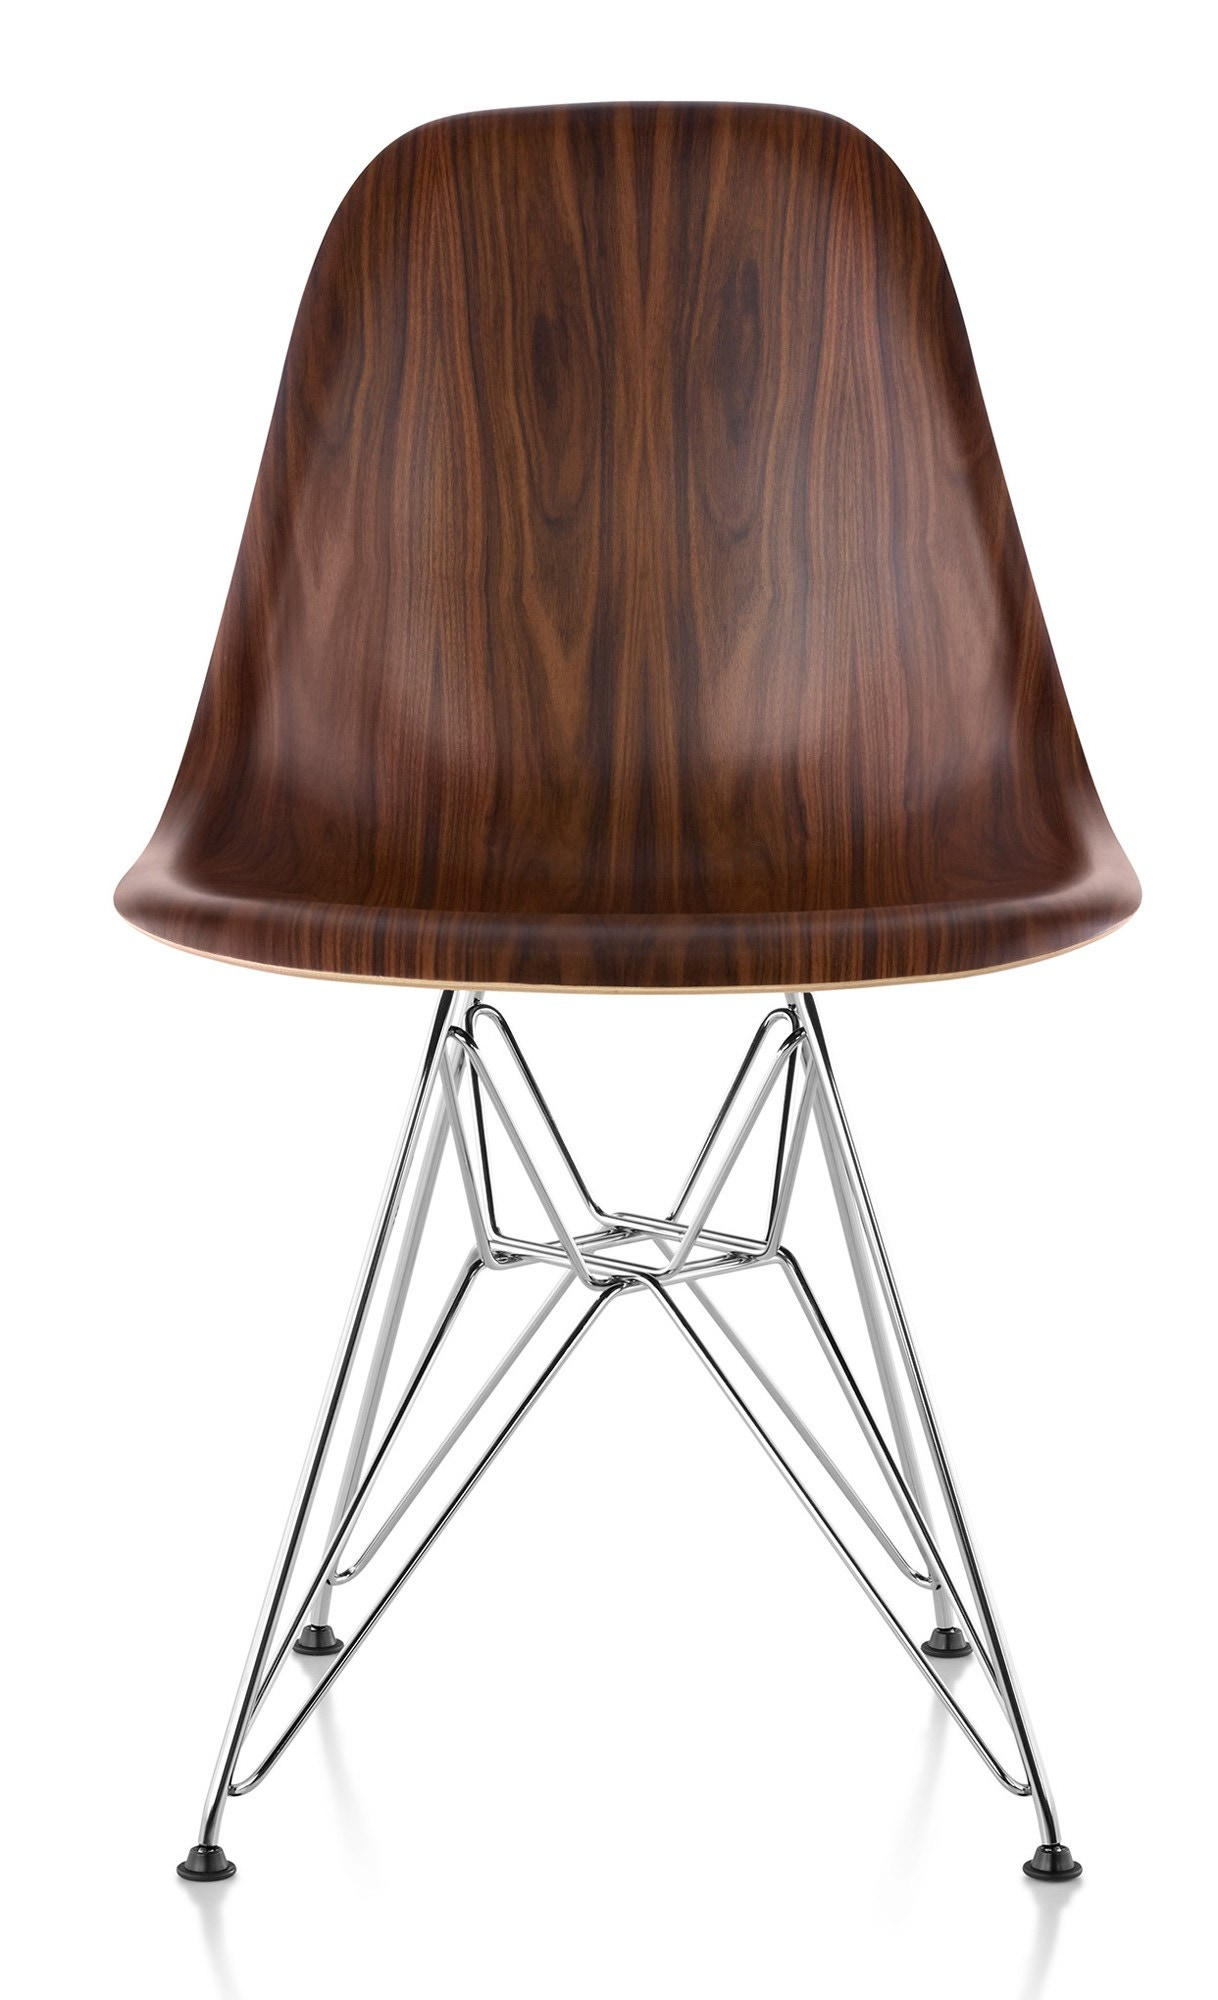 Herman Miller Eames® Molded Wood Side Chair